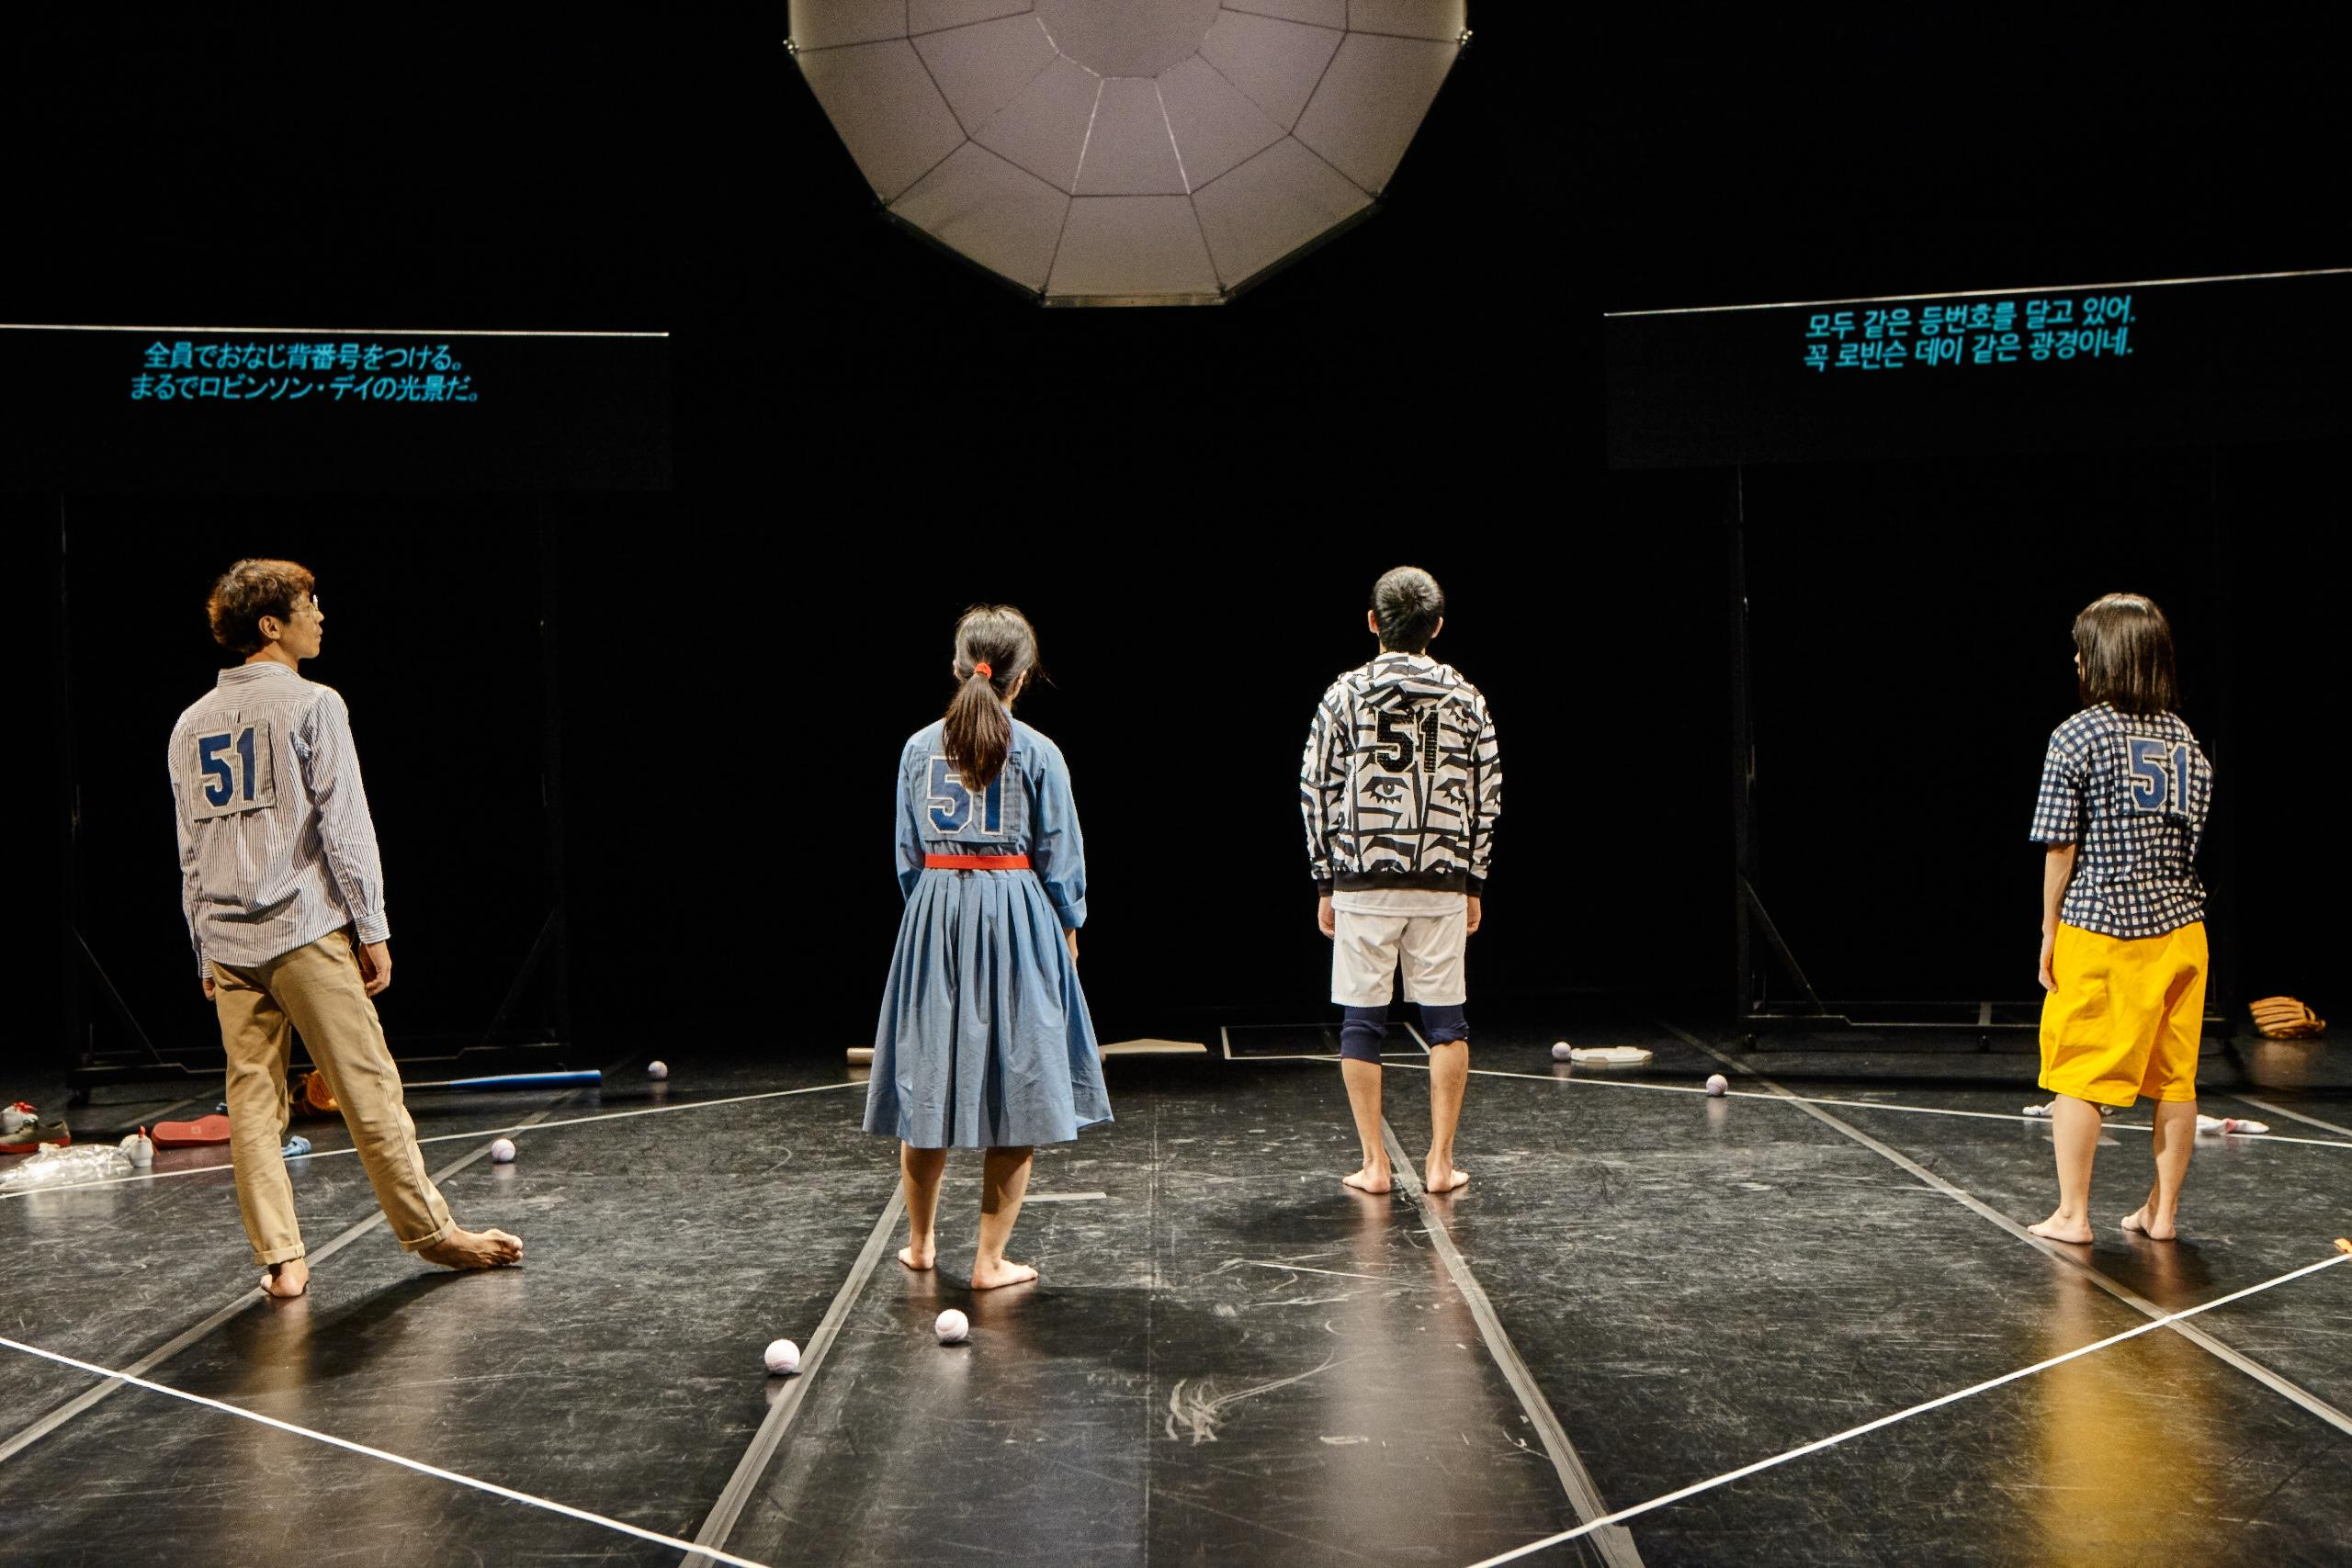 A performance still shows four people wearing the number 51, facing the back of the dark stage, and standing inside the white outline of a square with a few baseballs at their feet